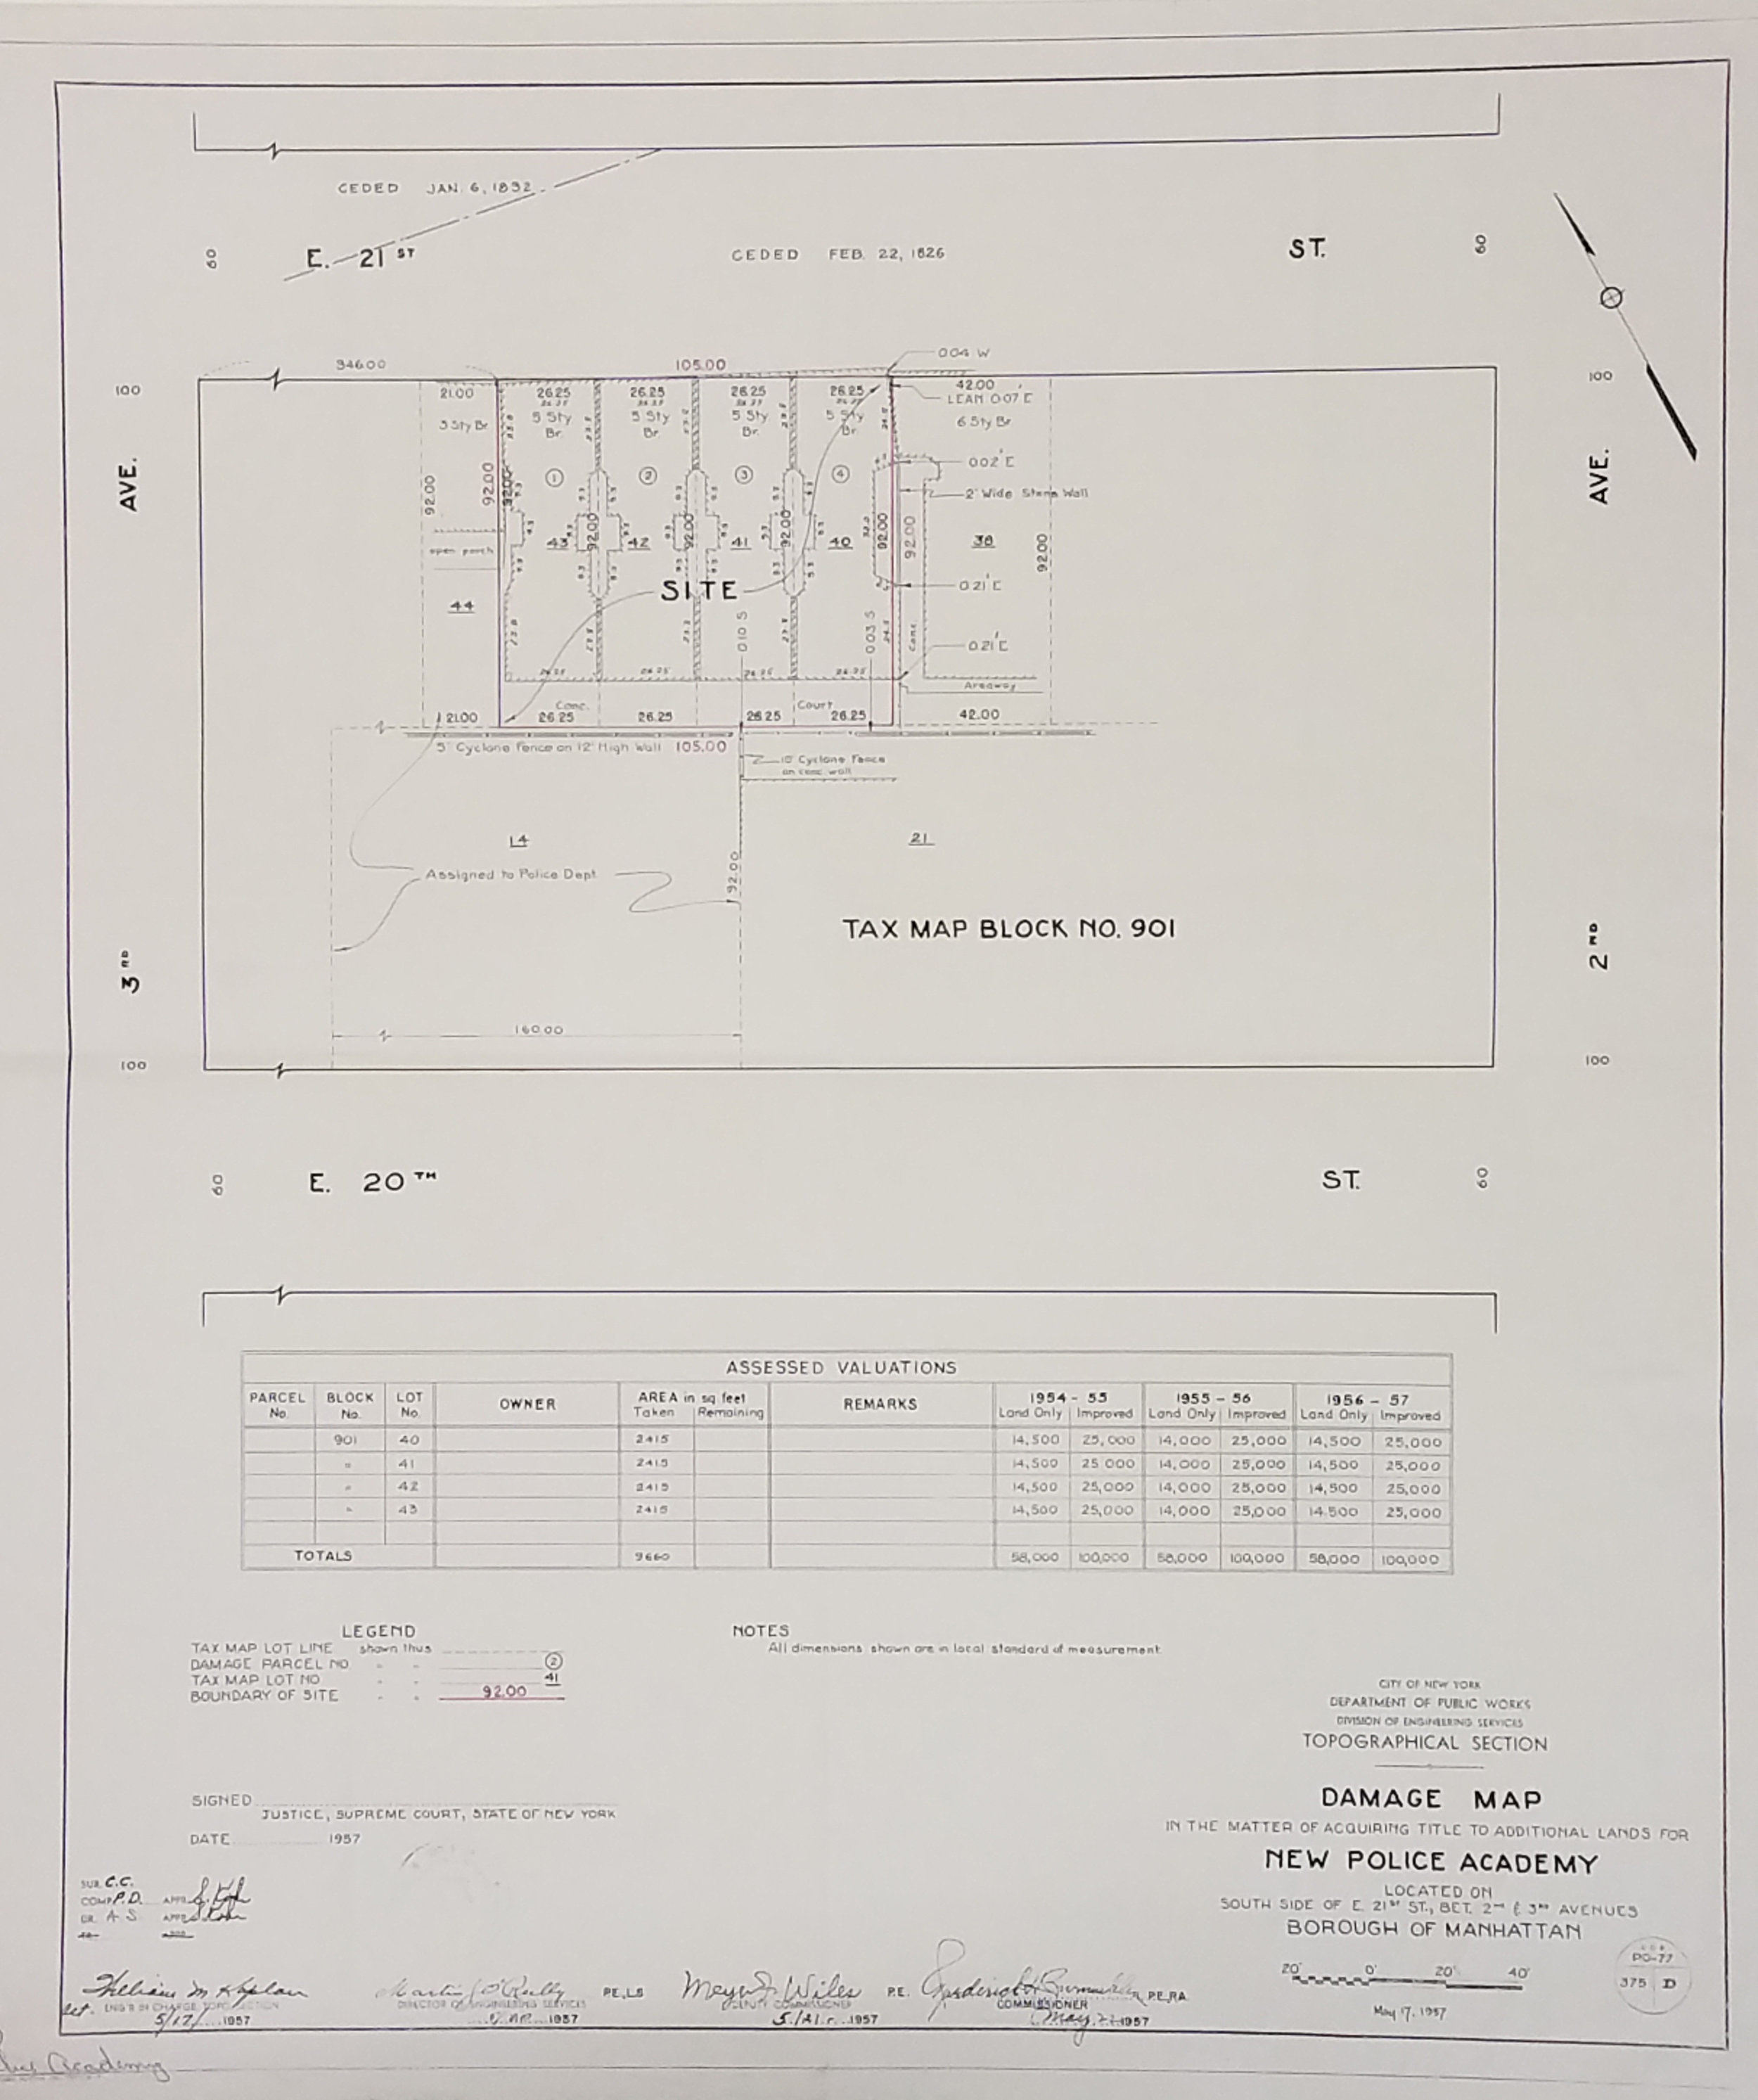 Damage Map in the Matter of Acquiring Title to Additional Lands for New Police Academy, 1957. Board of Estimate and Apportionment collection, NYC Municipal Archives.